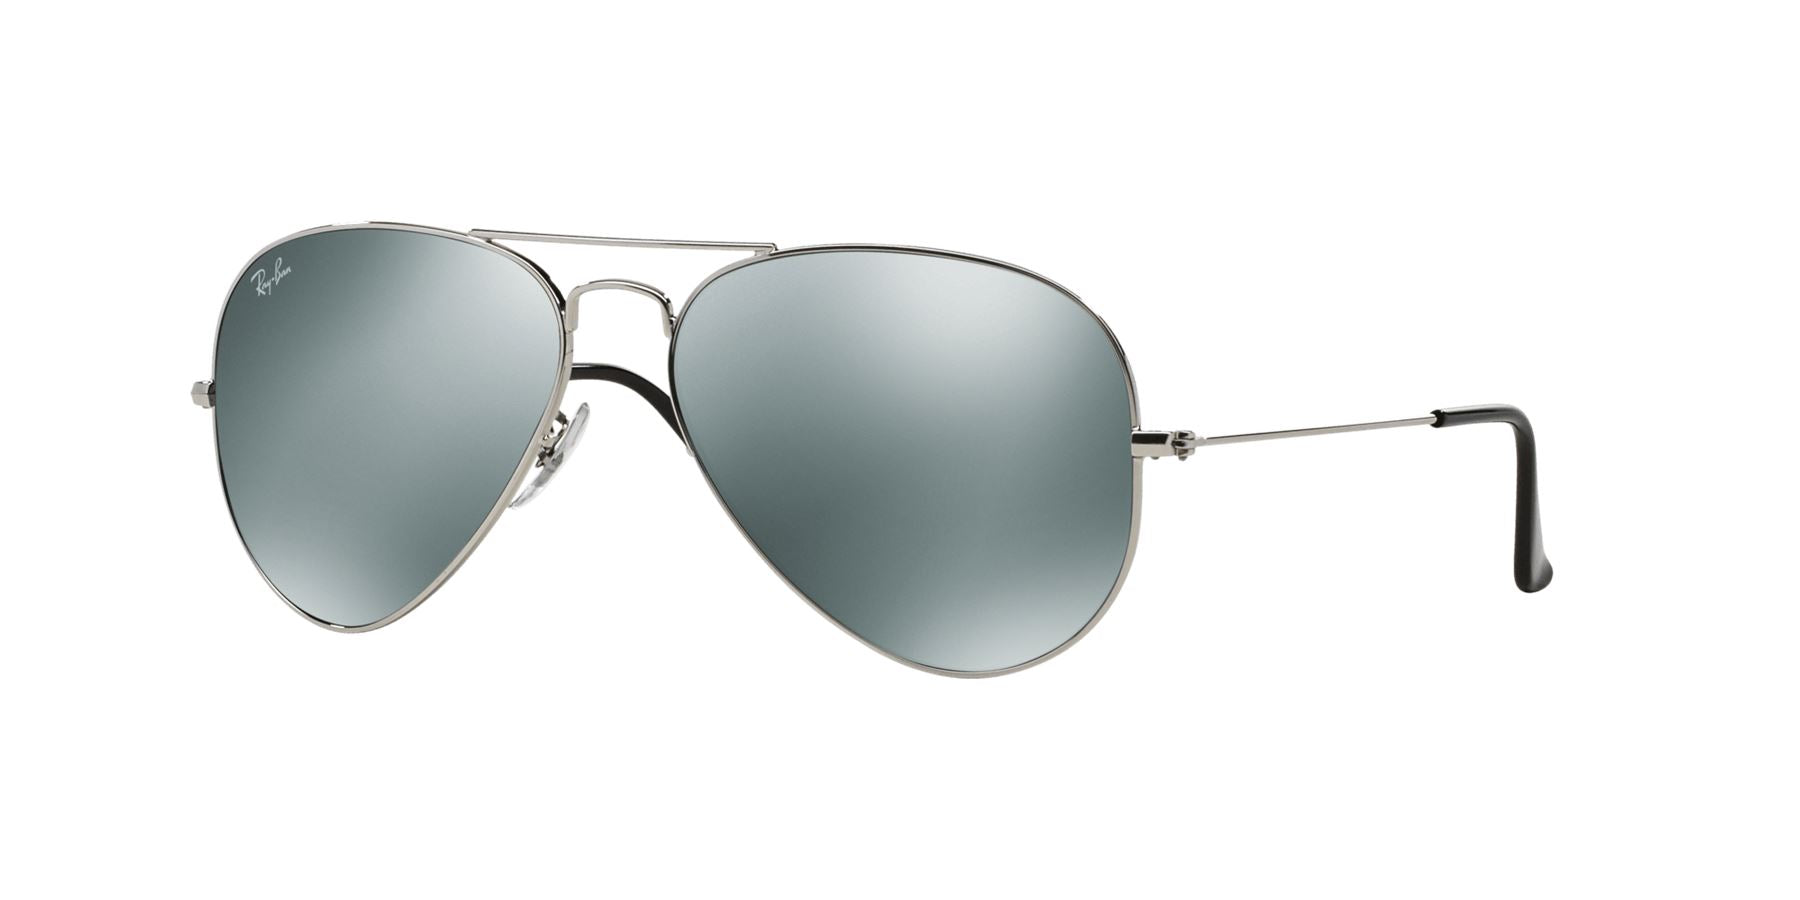 Ray-Ban Sunglasses Aviator RB3025 W3277 Silver Crystal Grey Mirror  ** - Size - 58